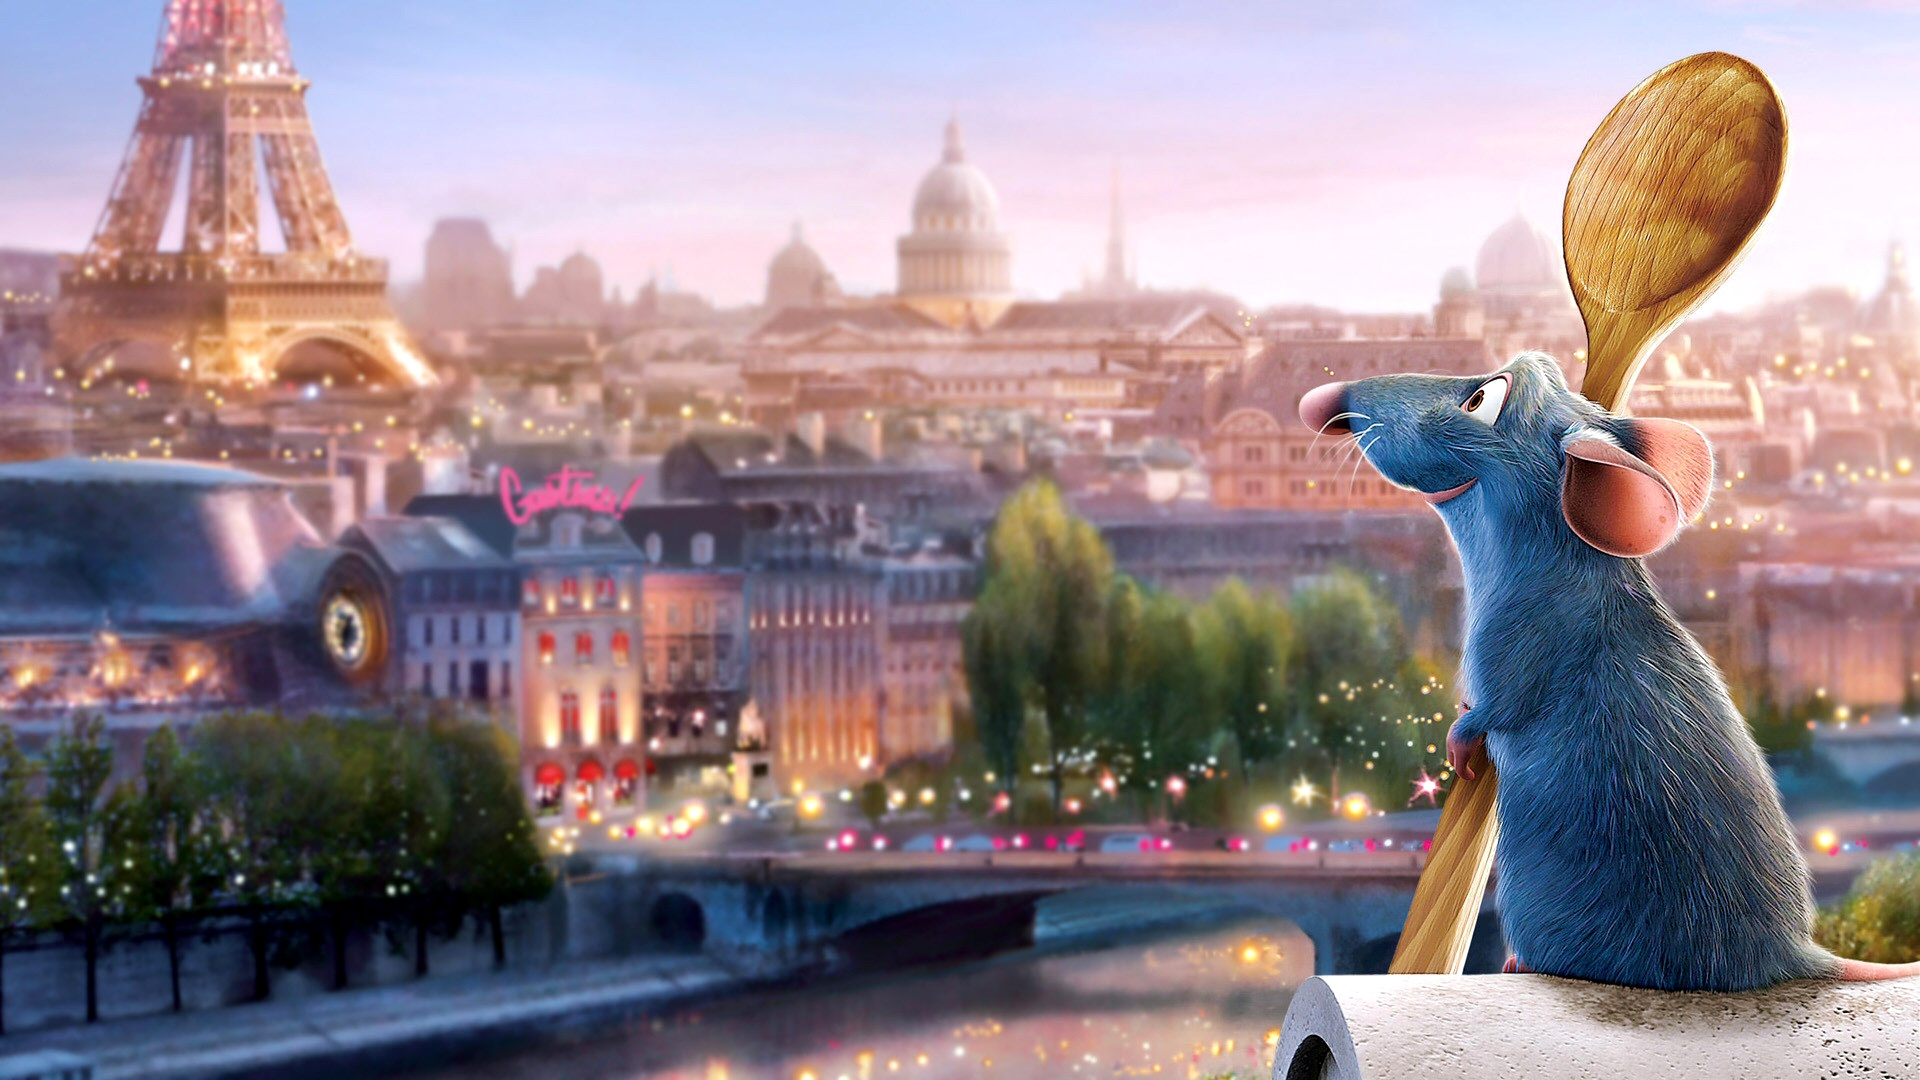 Ratatouille widescreen for desktop